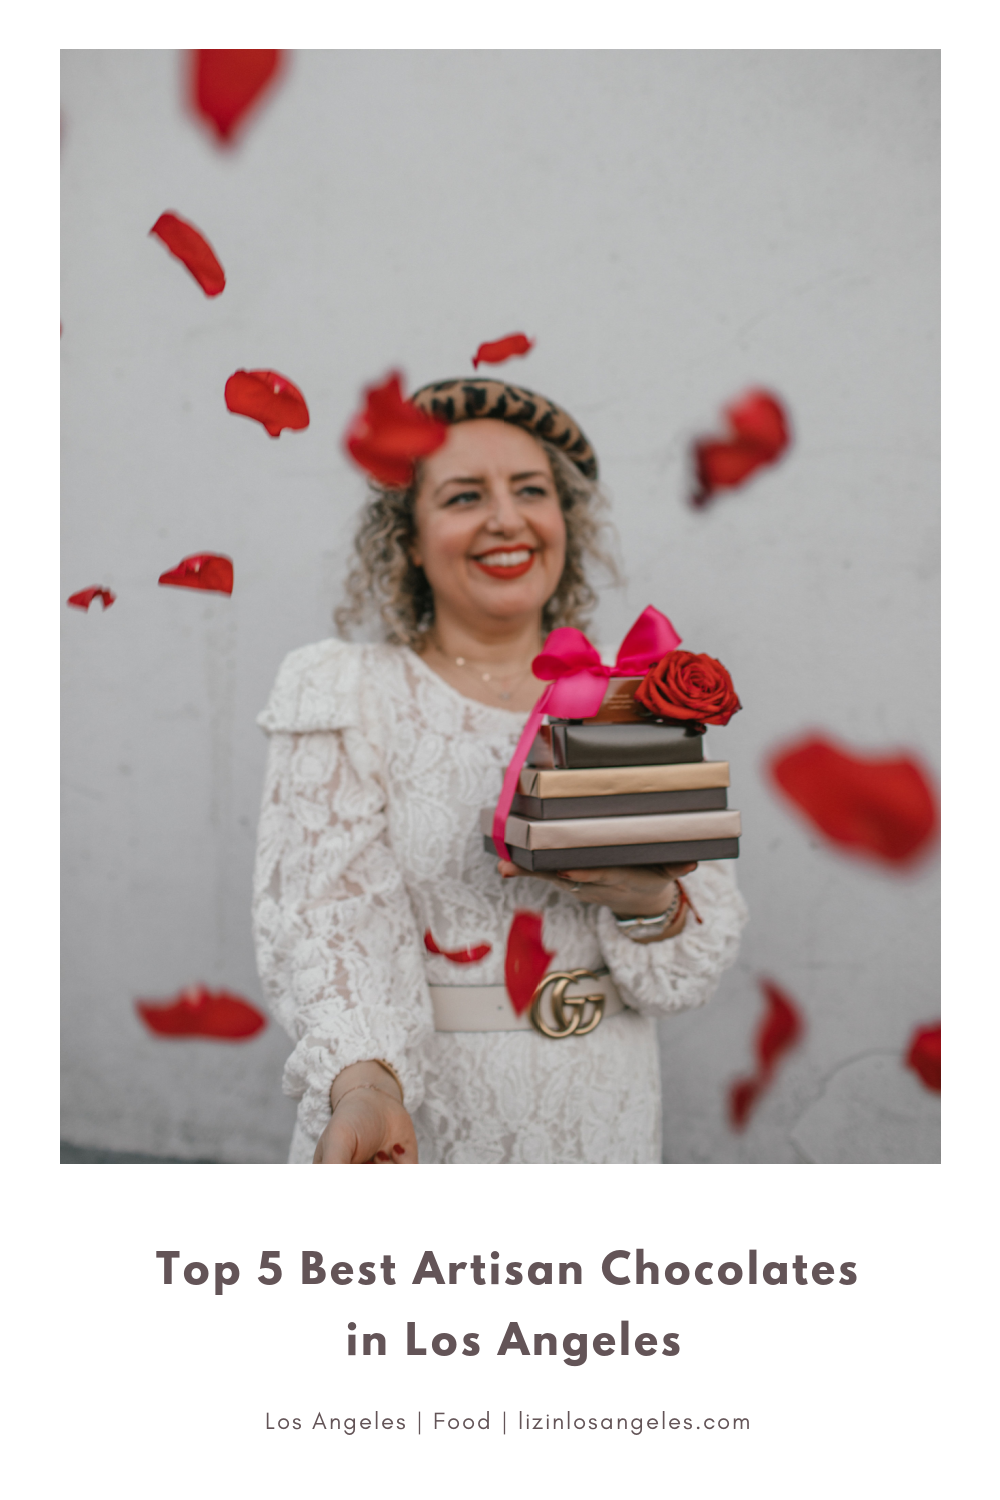 Top 5 Best Artisan Chocolates in Los Angeles, a blog post by Liz in Los Angeles, top Los Angeles blogger, an image of a blonde women wearing a white dress and animal print beret holding artisan chocolate with red roses petals flying around